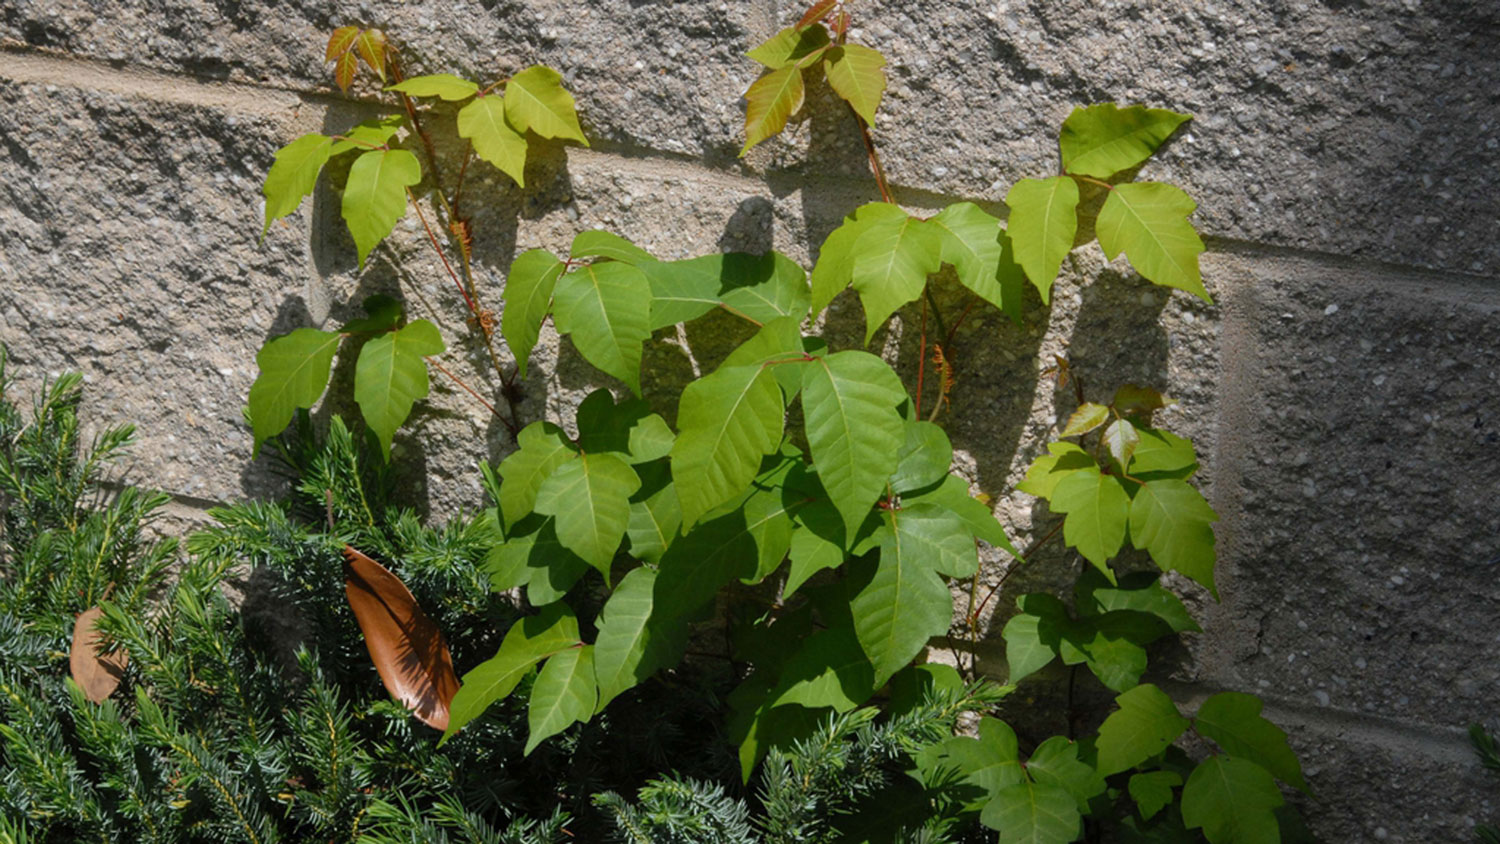 Poison ivy growing up a brick wall